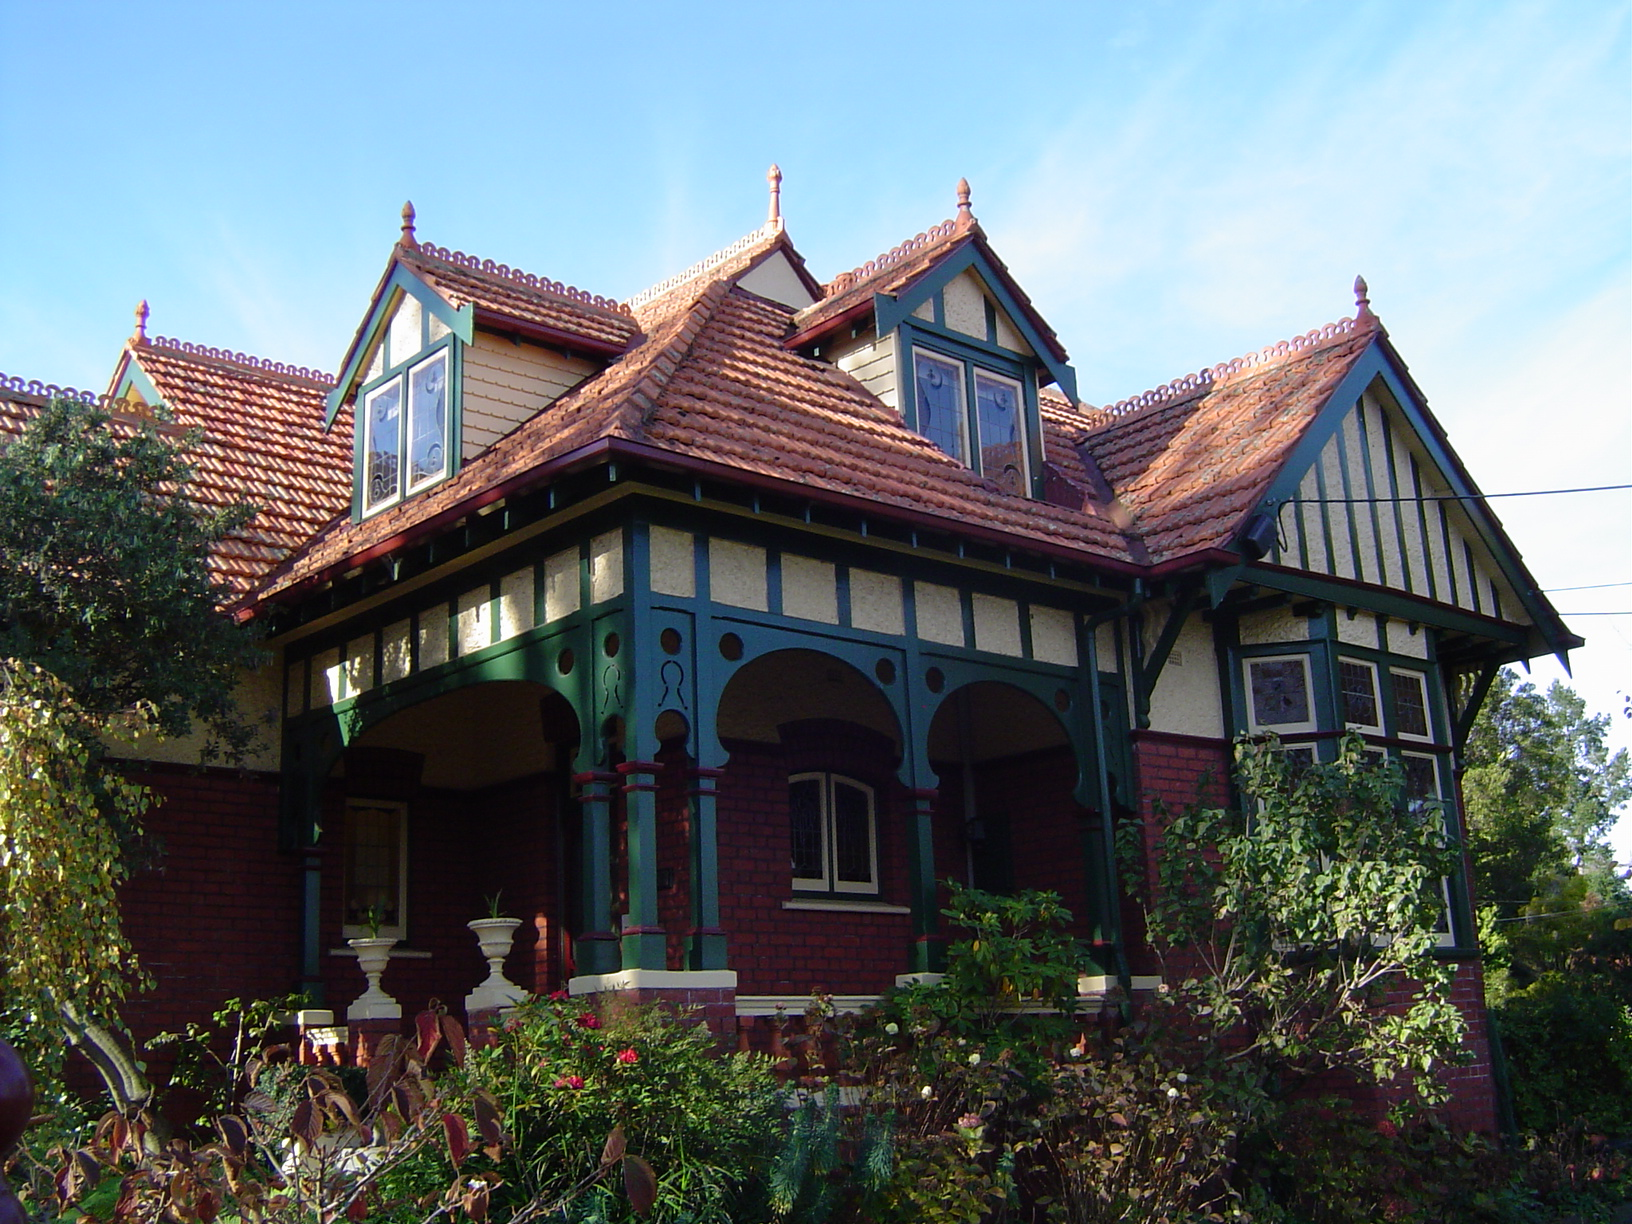 FileQueen Anne Style House In Ivanhoe Victoria